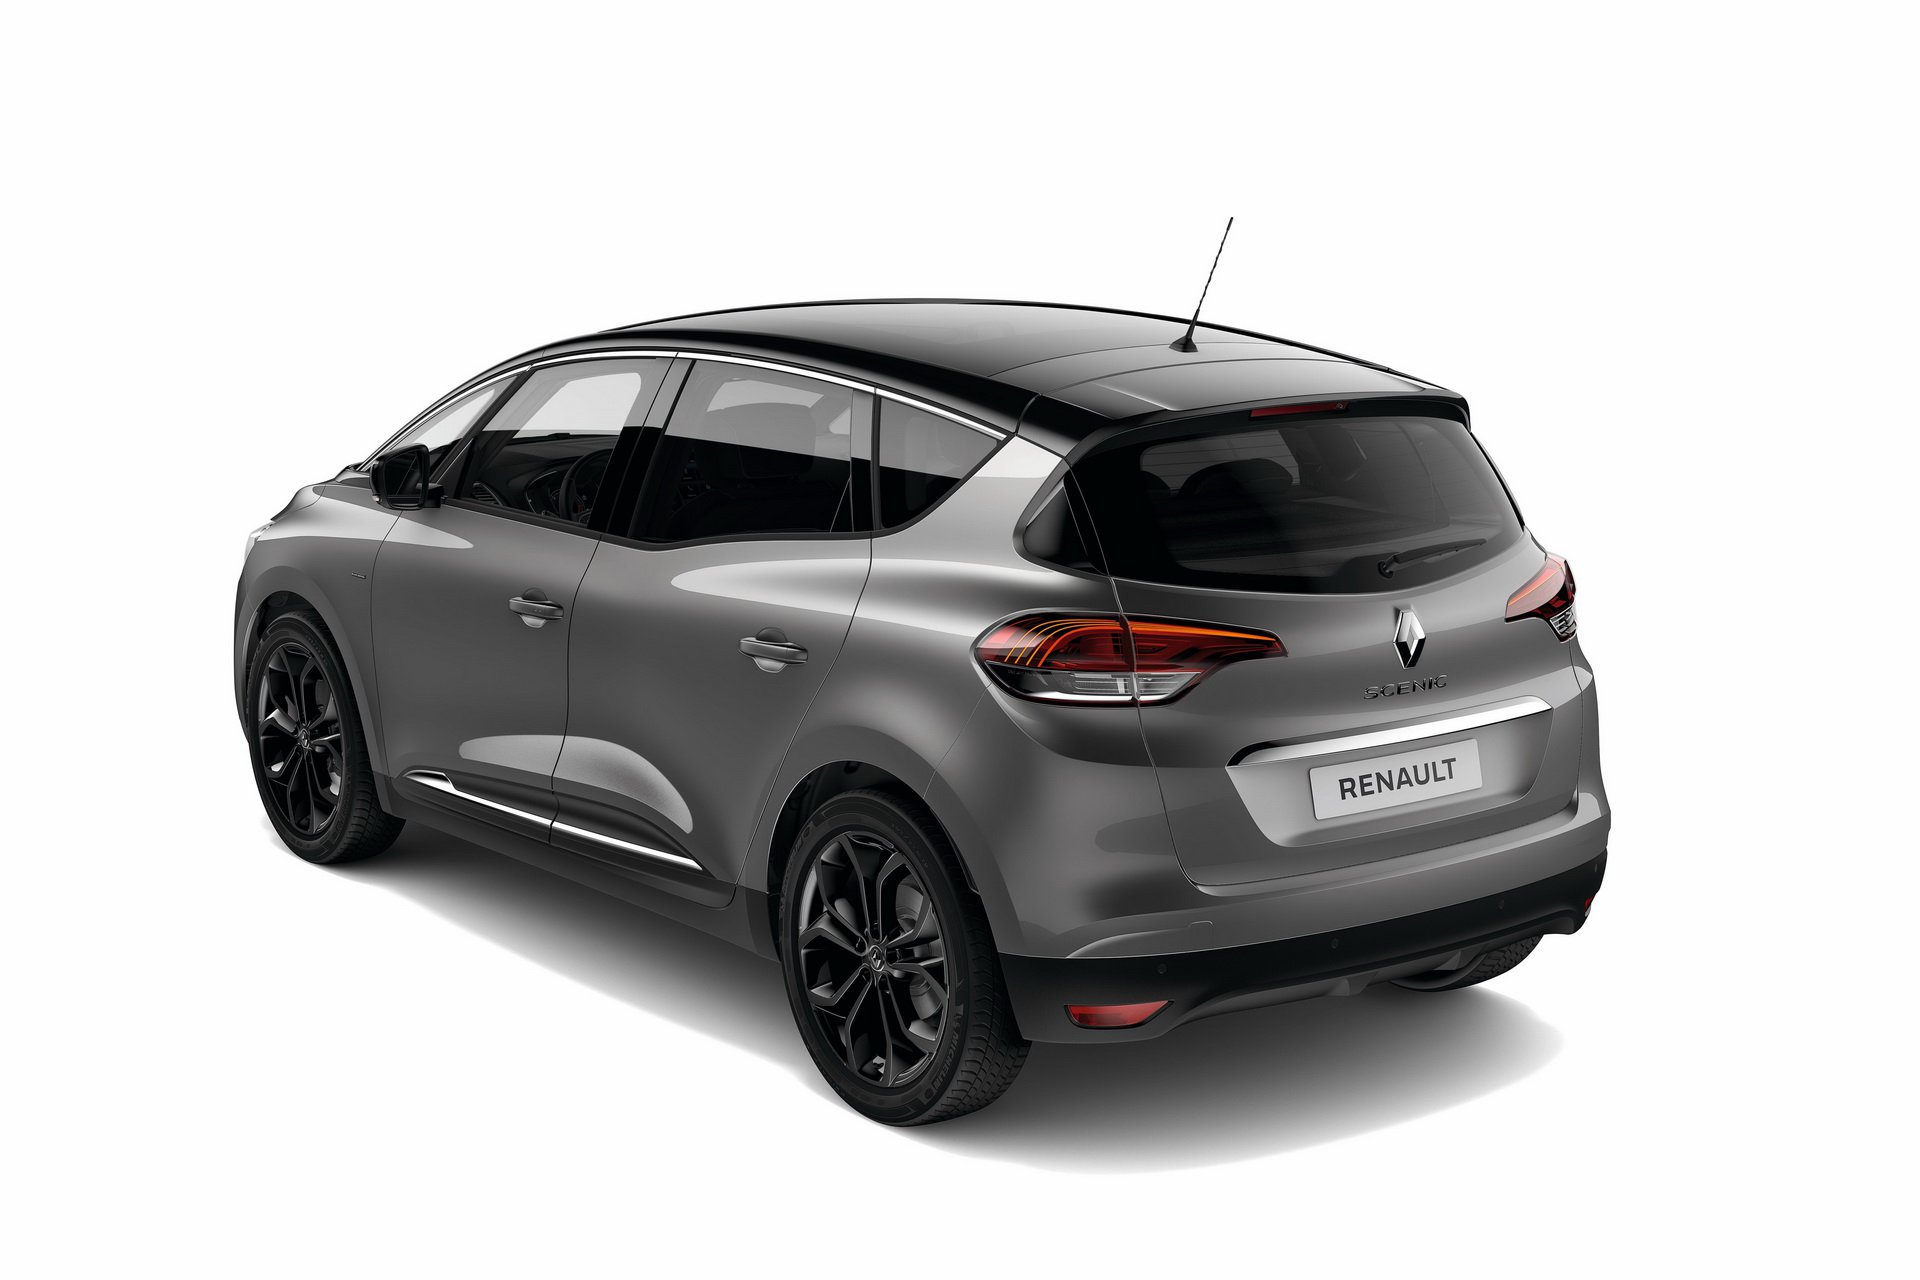 b1a2a7c0-renault-scenic-black-edition-france-6